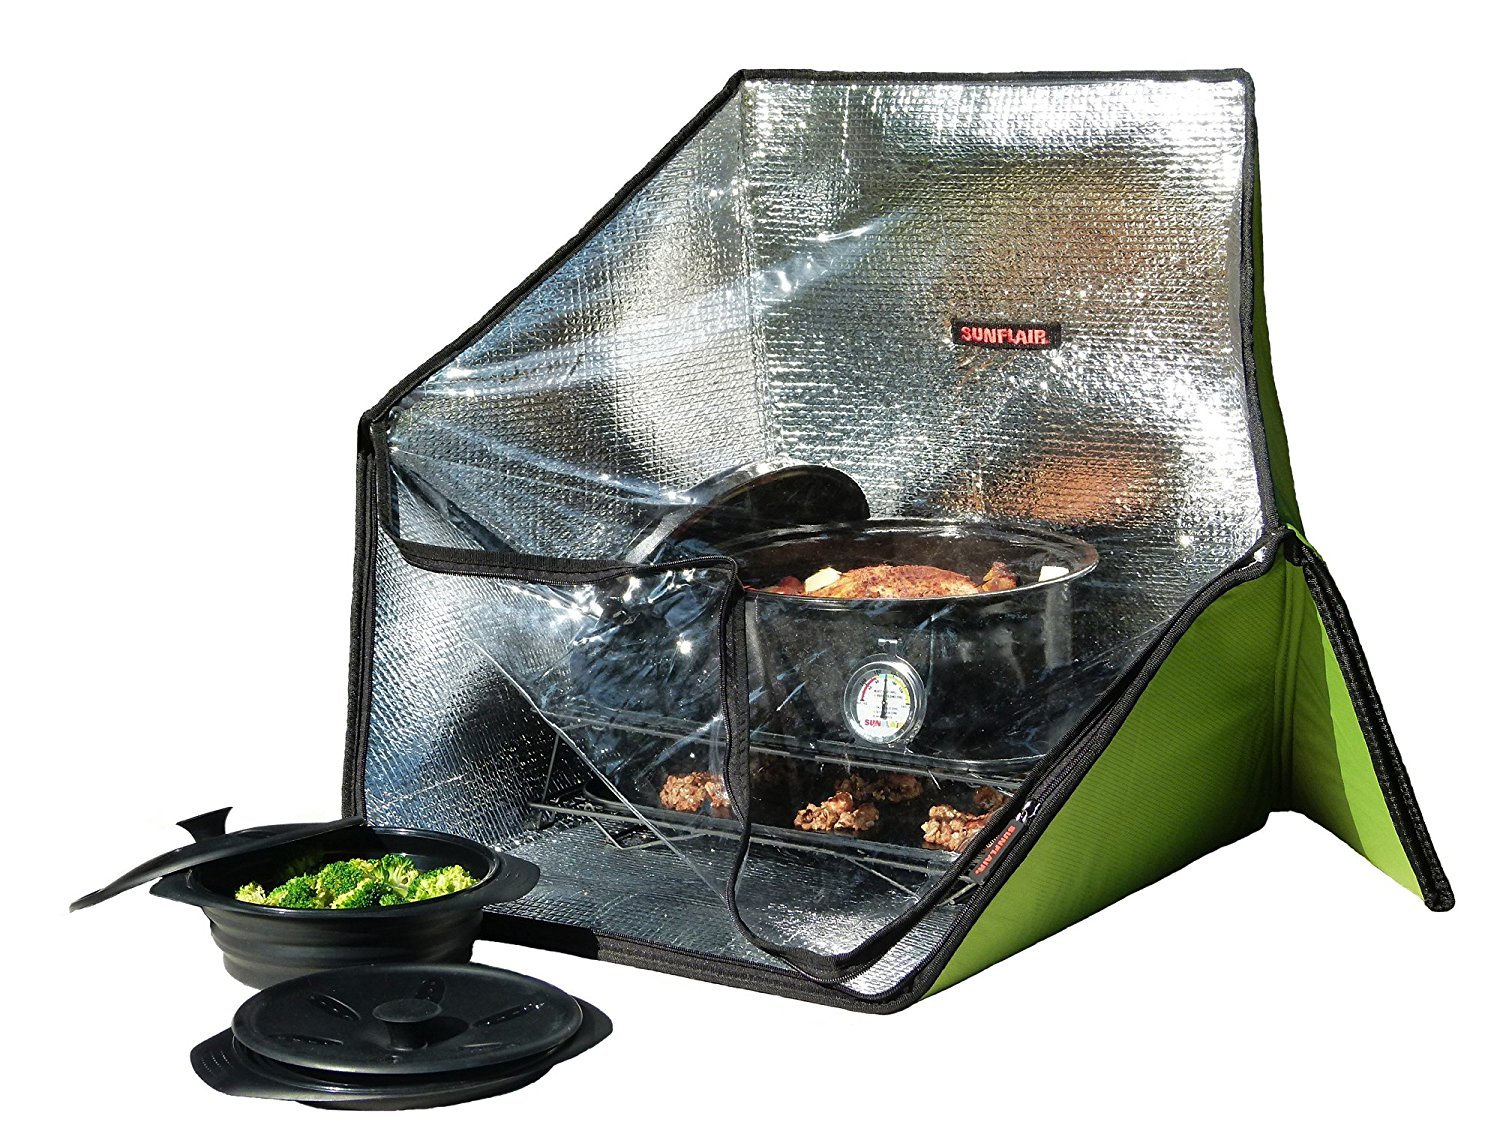 Sunflair Solar Oven Kit